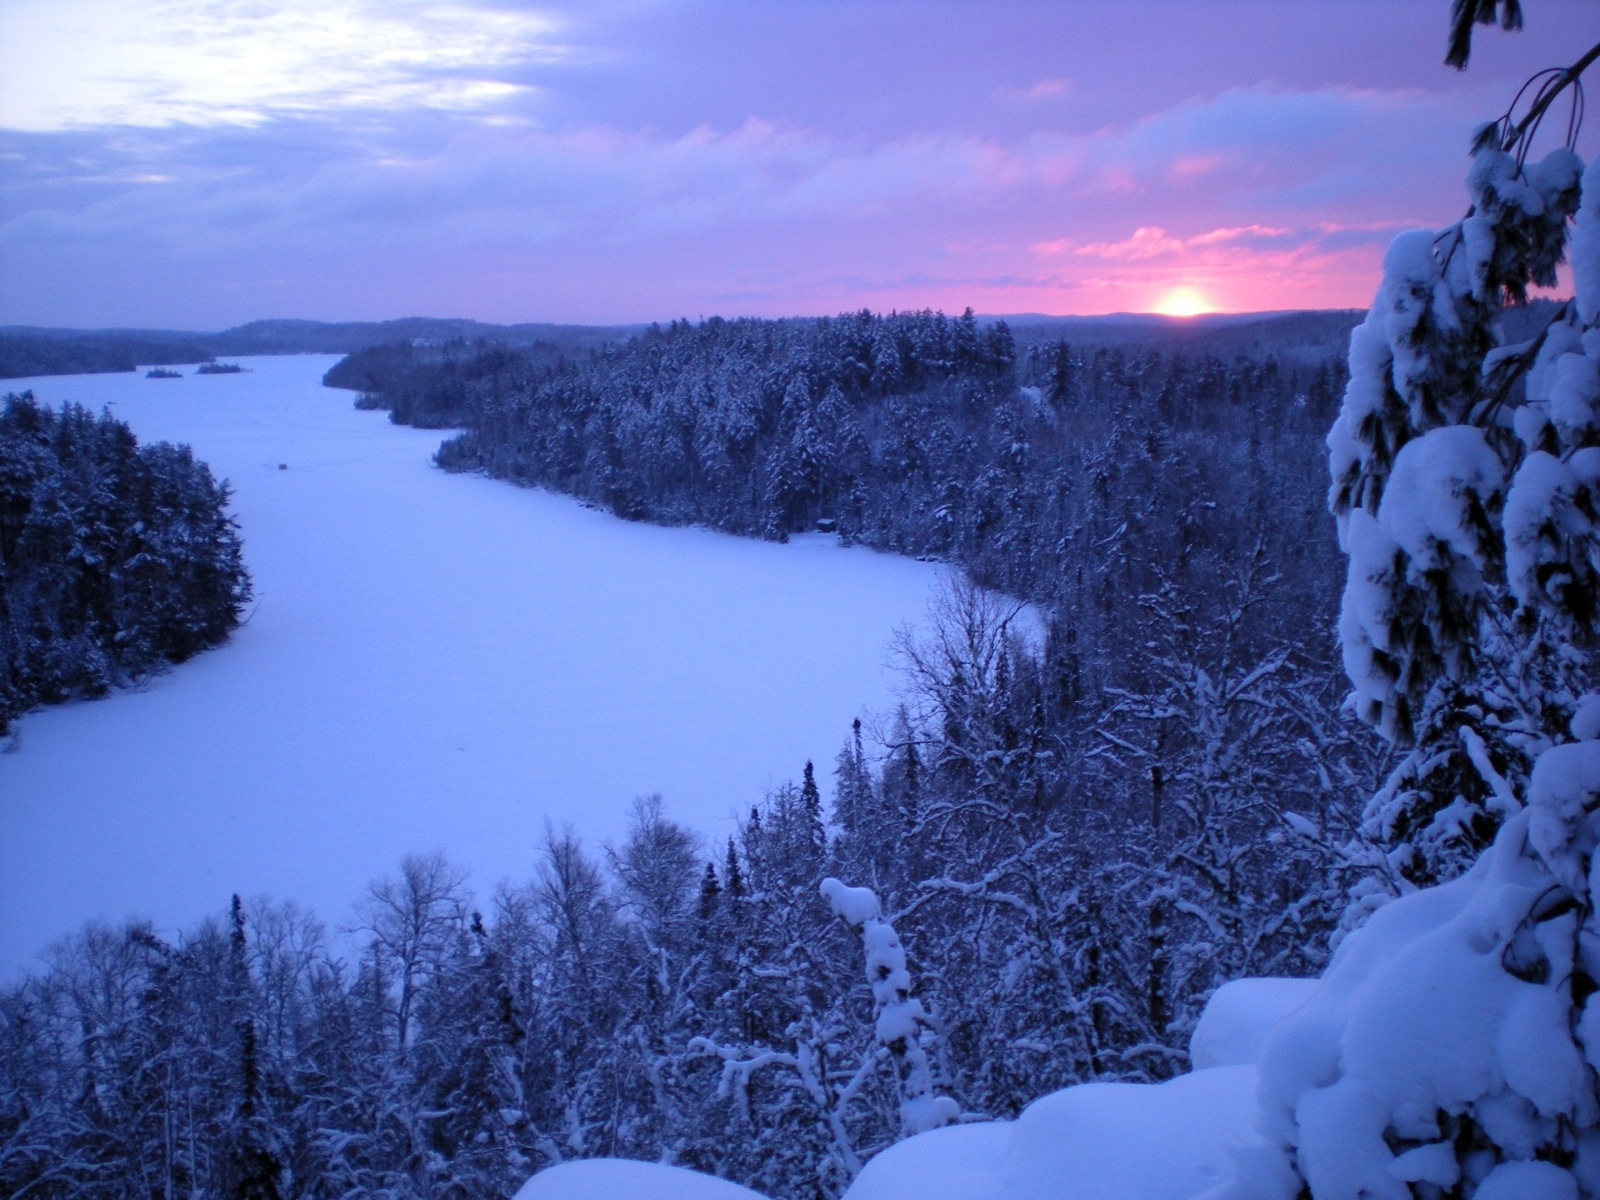 The winter sun rises over the snow-covered, frozen West Bearskin Lake that's surrounded by snowy trees.